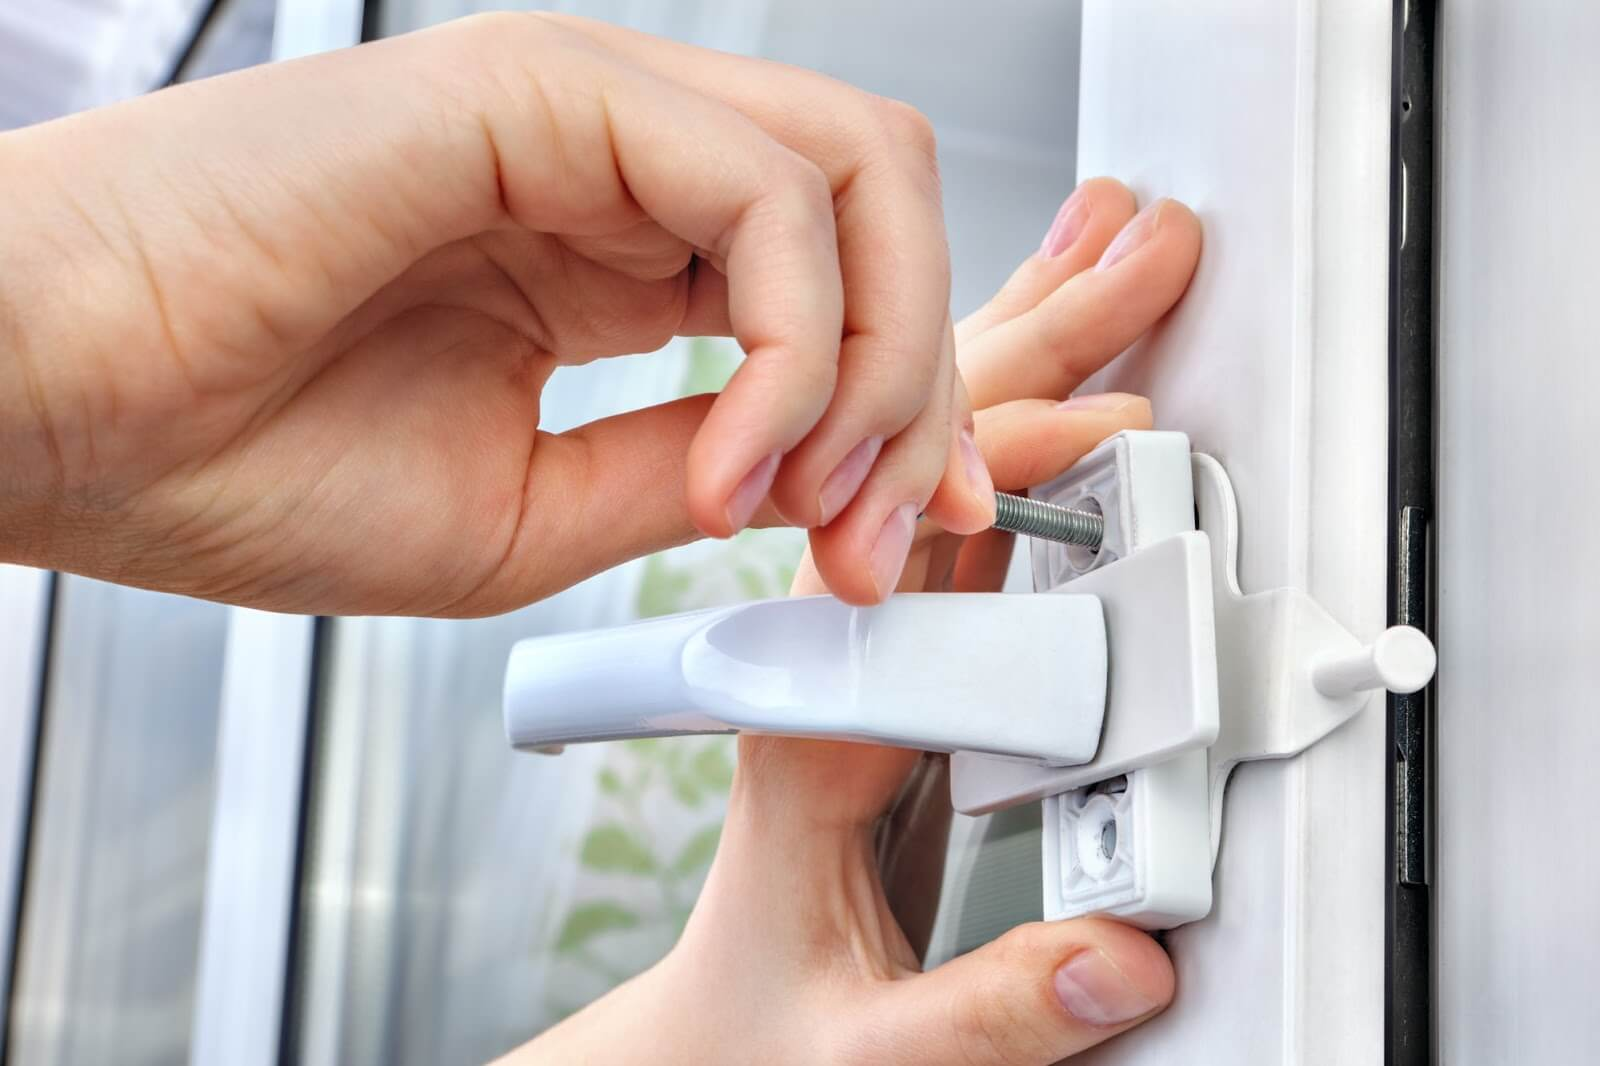 What to do if your UPVC window lock is jammed